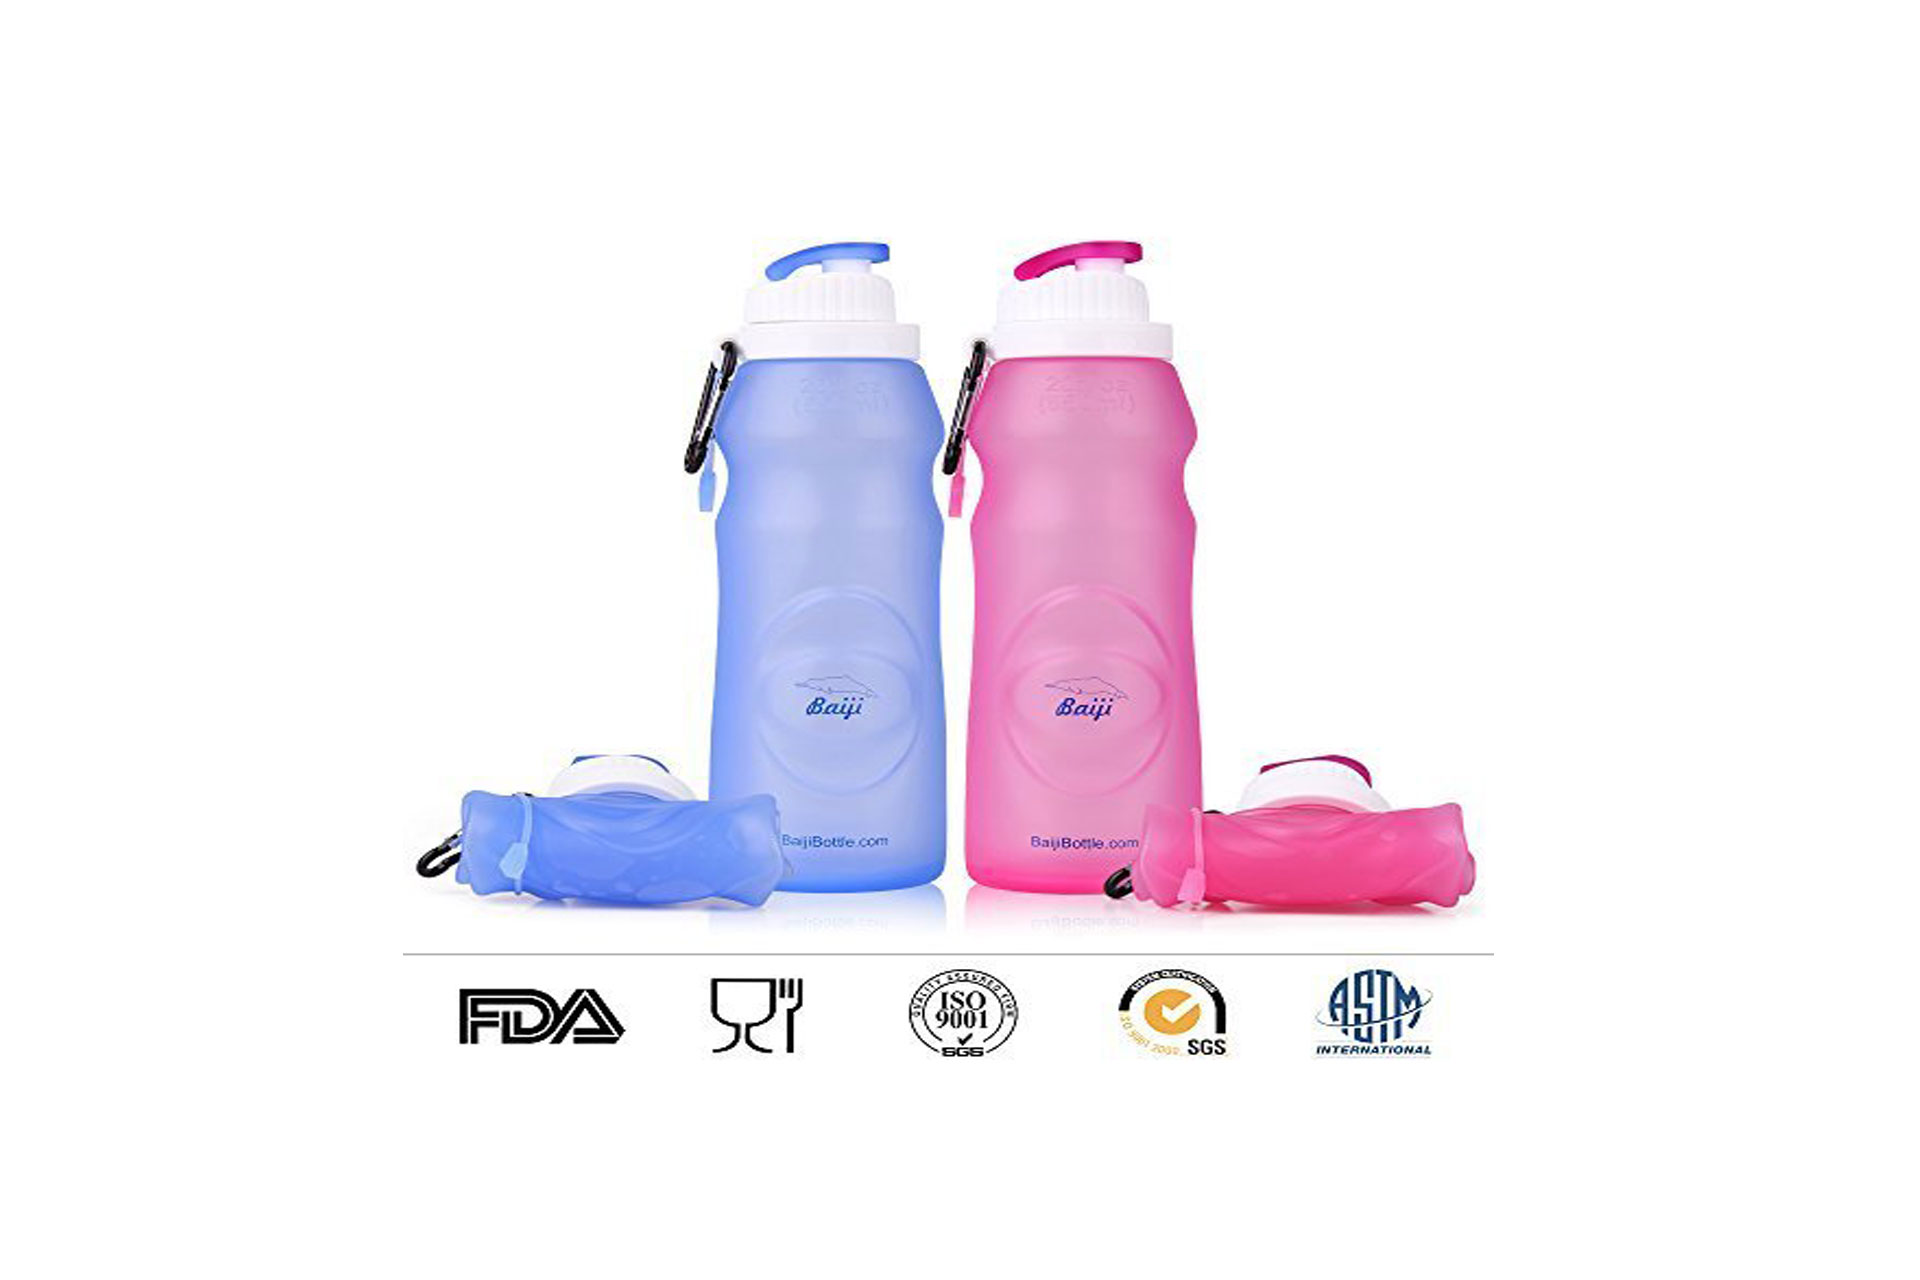 Baiji collapsible water bottle; Courtesy of Amazon